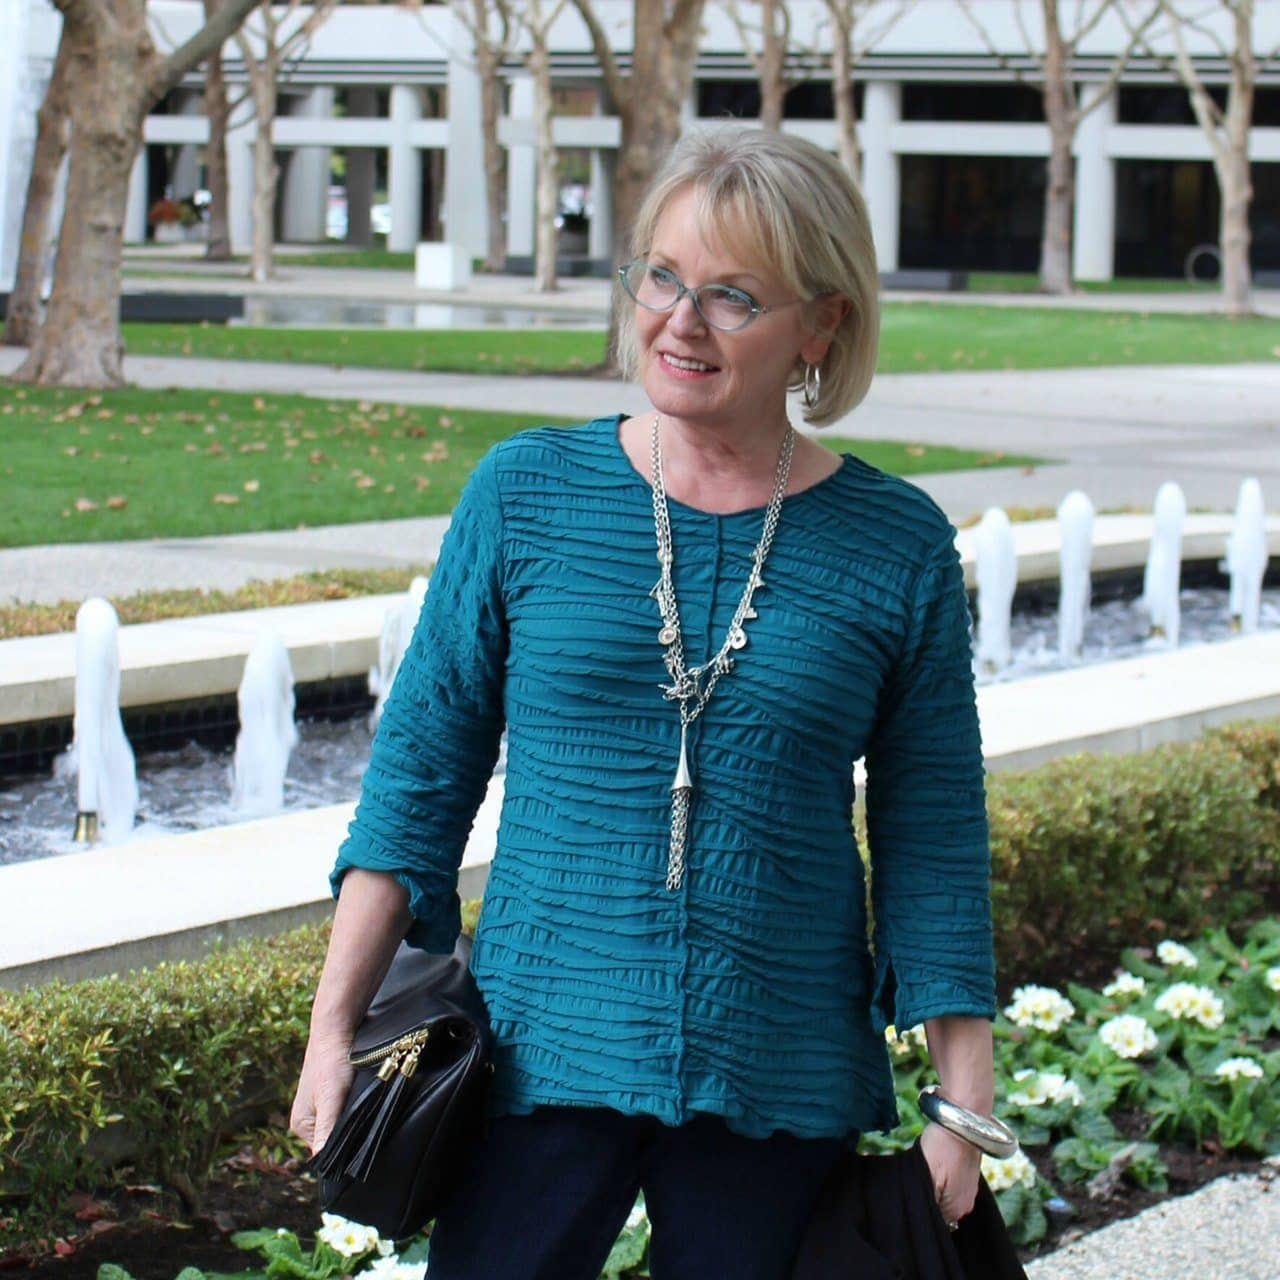 Jennifer Connolly of A Well Styled Life wearing top from Artful Home